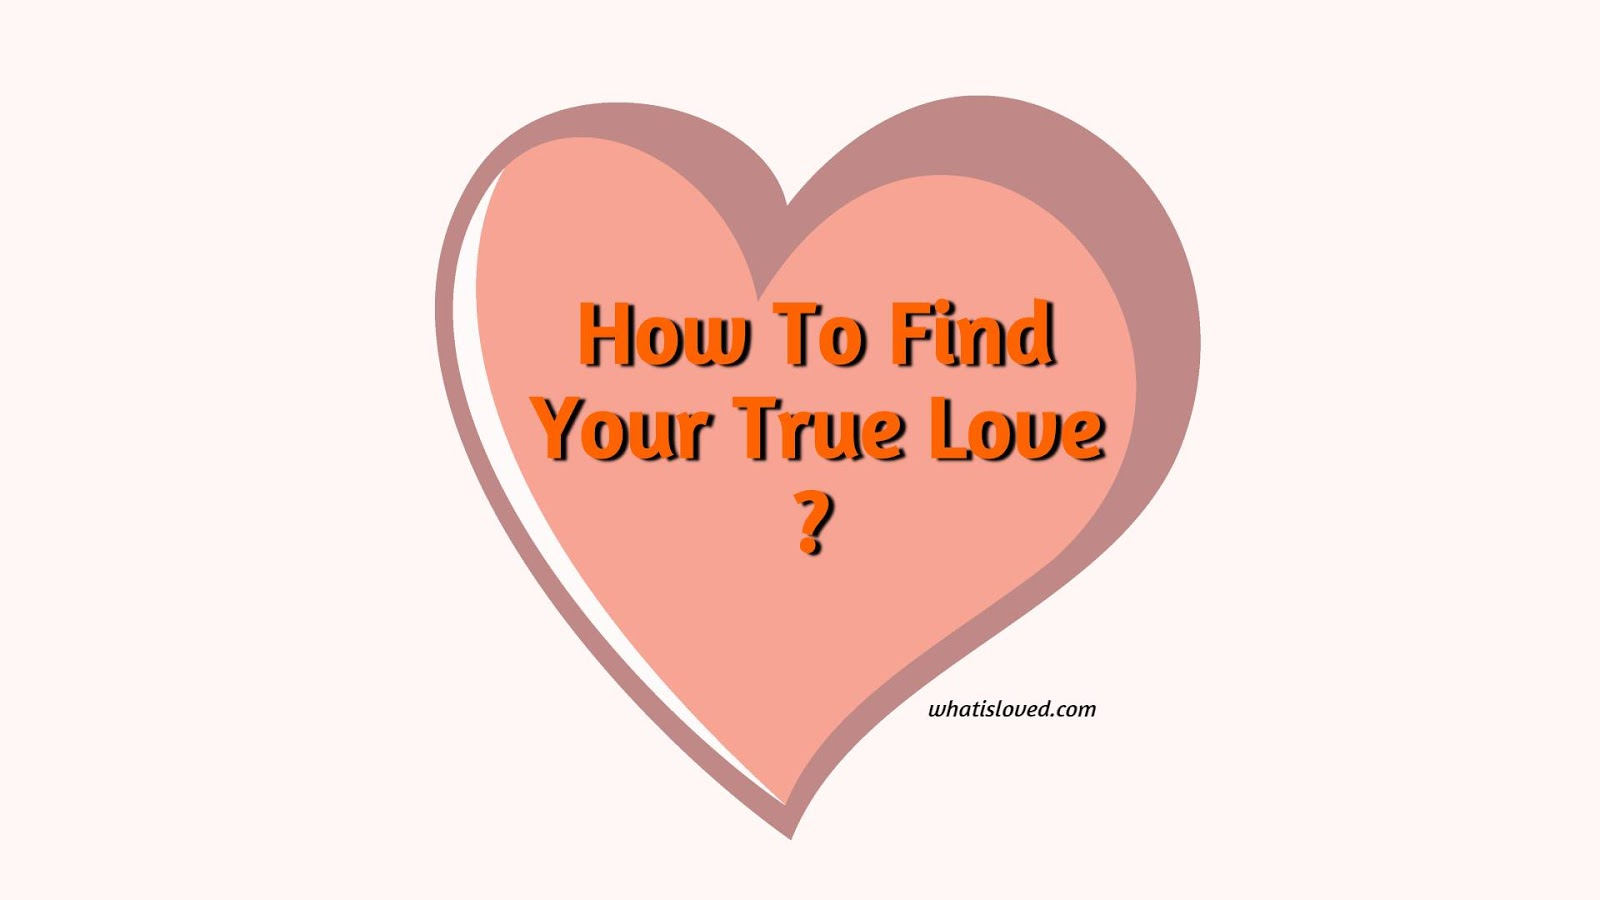 How to Find True Love:-Finding true love doesn't seem too hard. For that you have to be patient, be aware and be prudent. But not everything is found by calculating all the time, especially love.